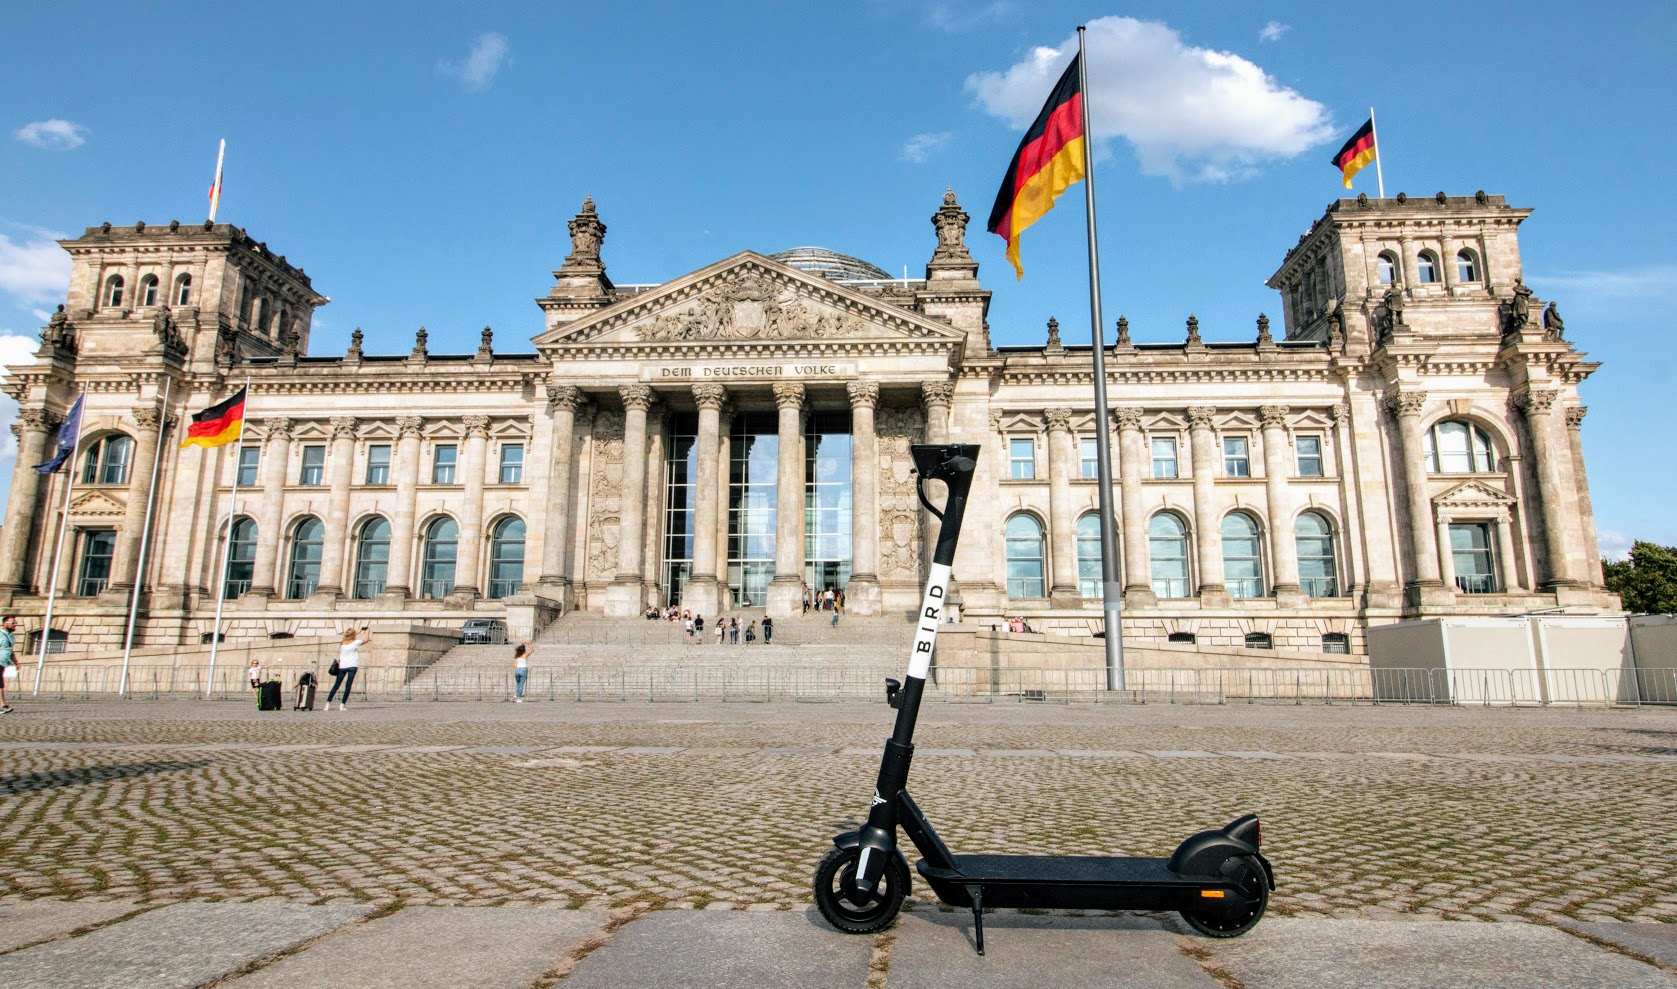 Bird electric scooter in Berlin, Germany in front of a famous building